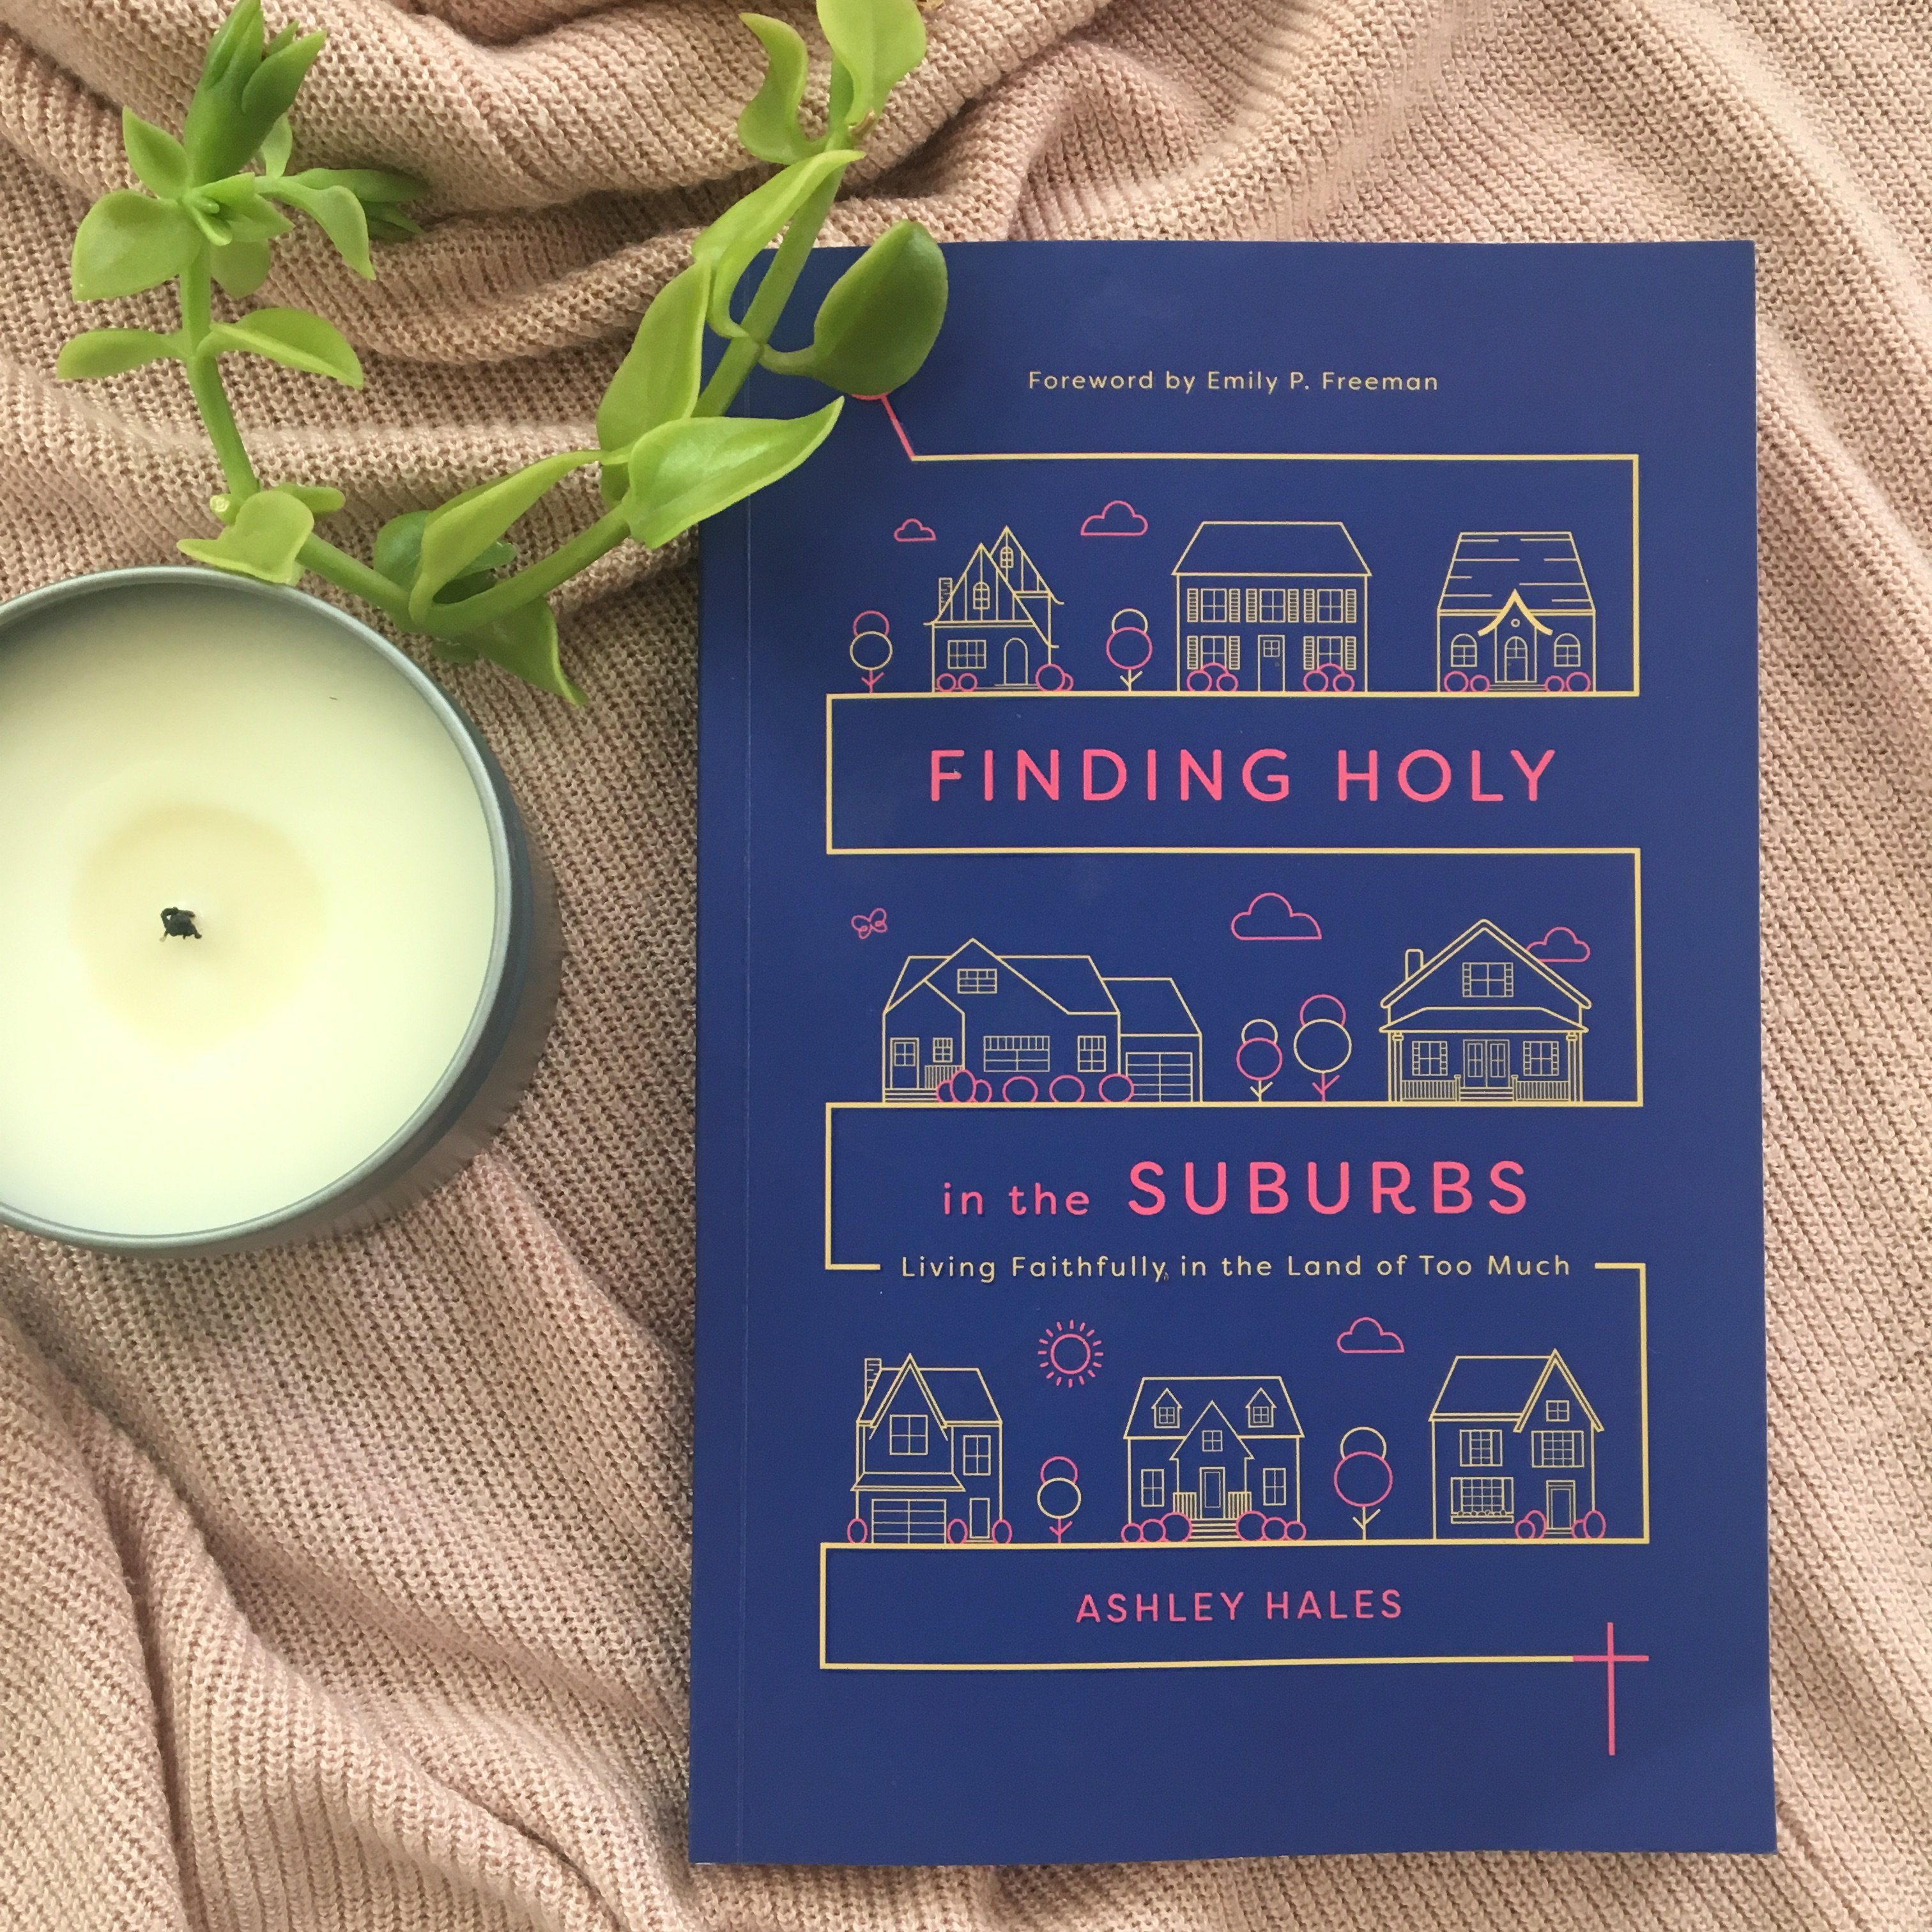 Interview with Ashley Hales (Author of Finding Holy in the Suburbs)